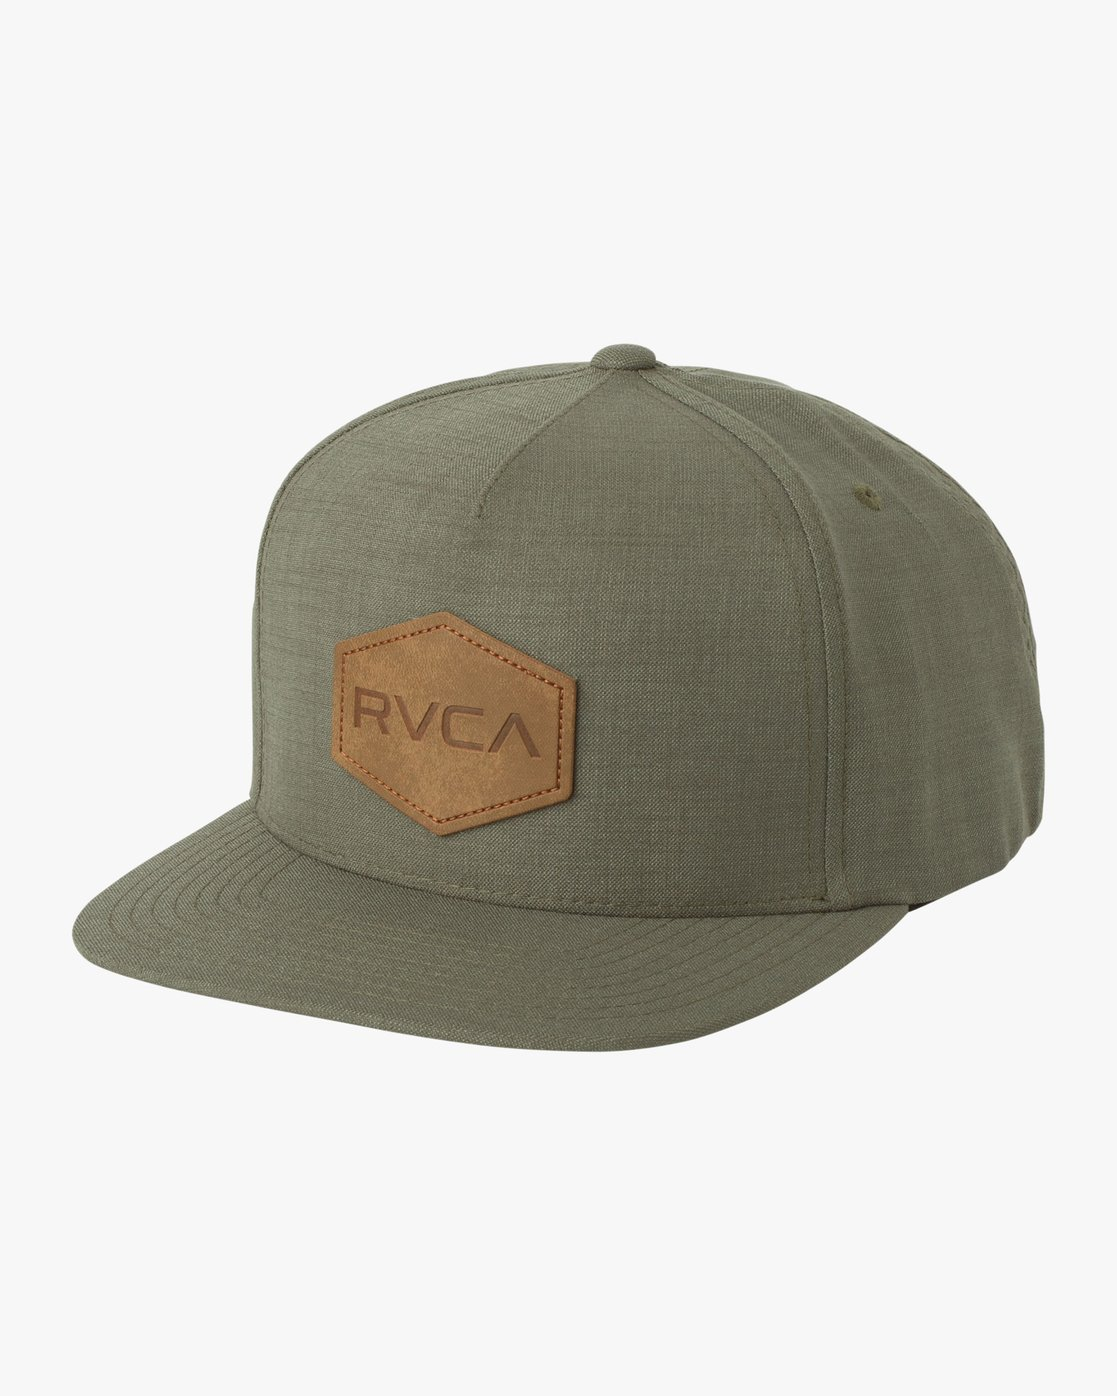 3b6a1341afce7 0 Commonwealth Deluxe Snapback Hat Green MAHWQRCM RVCA